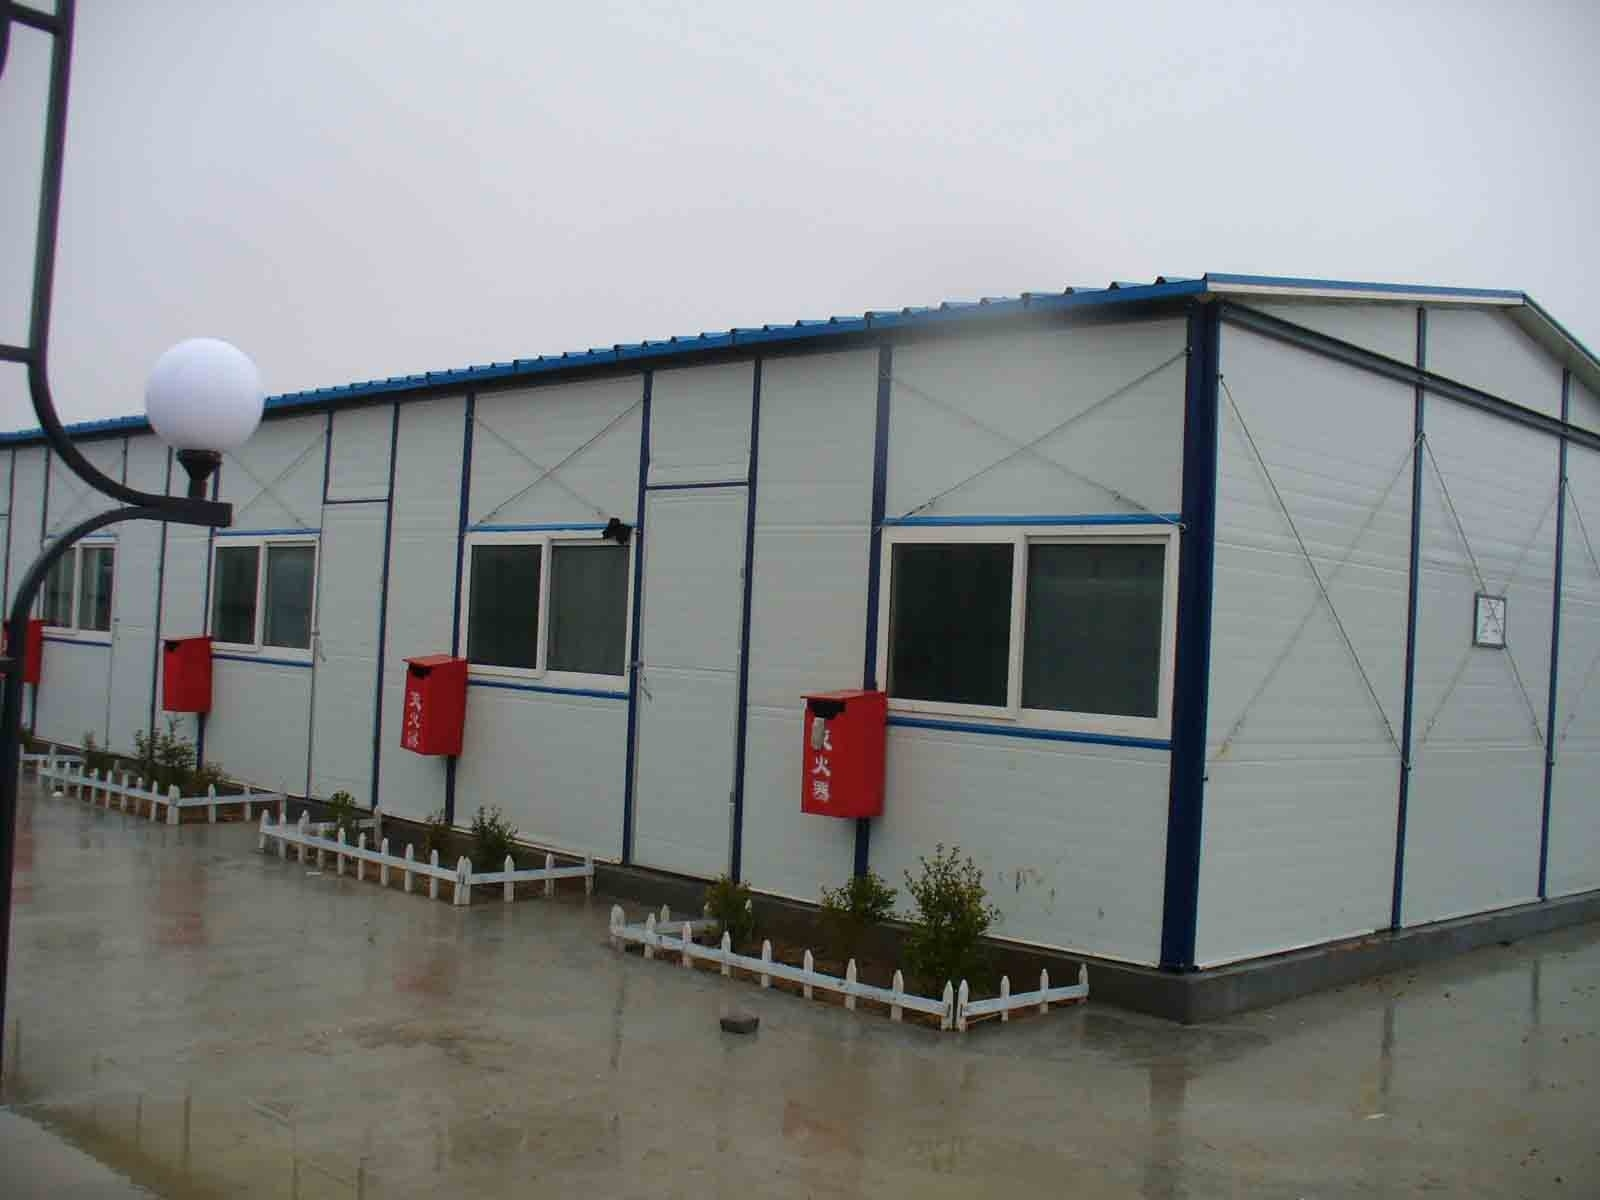 46 M2 Prefabricated Toilet Shower Units as well Portable Cabins as well 204 M2 Prefabricated Dormitories Buildings besides Large Log Homes Inside as well Liam Payne Balcony One Direction Picture n 4599996. on portable factory cabins